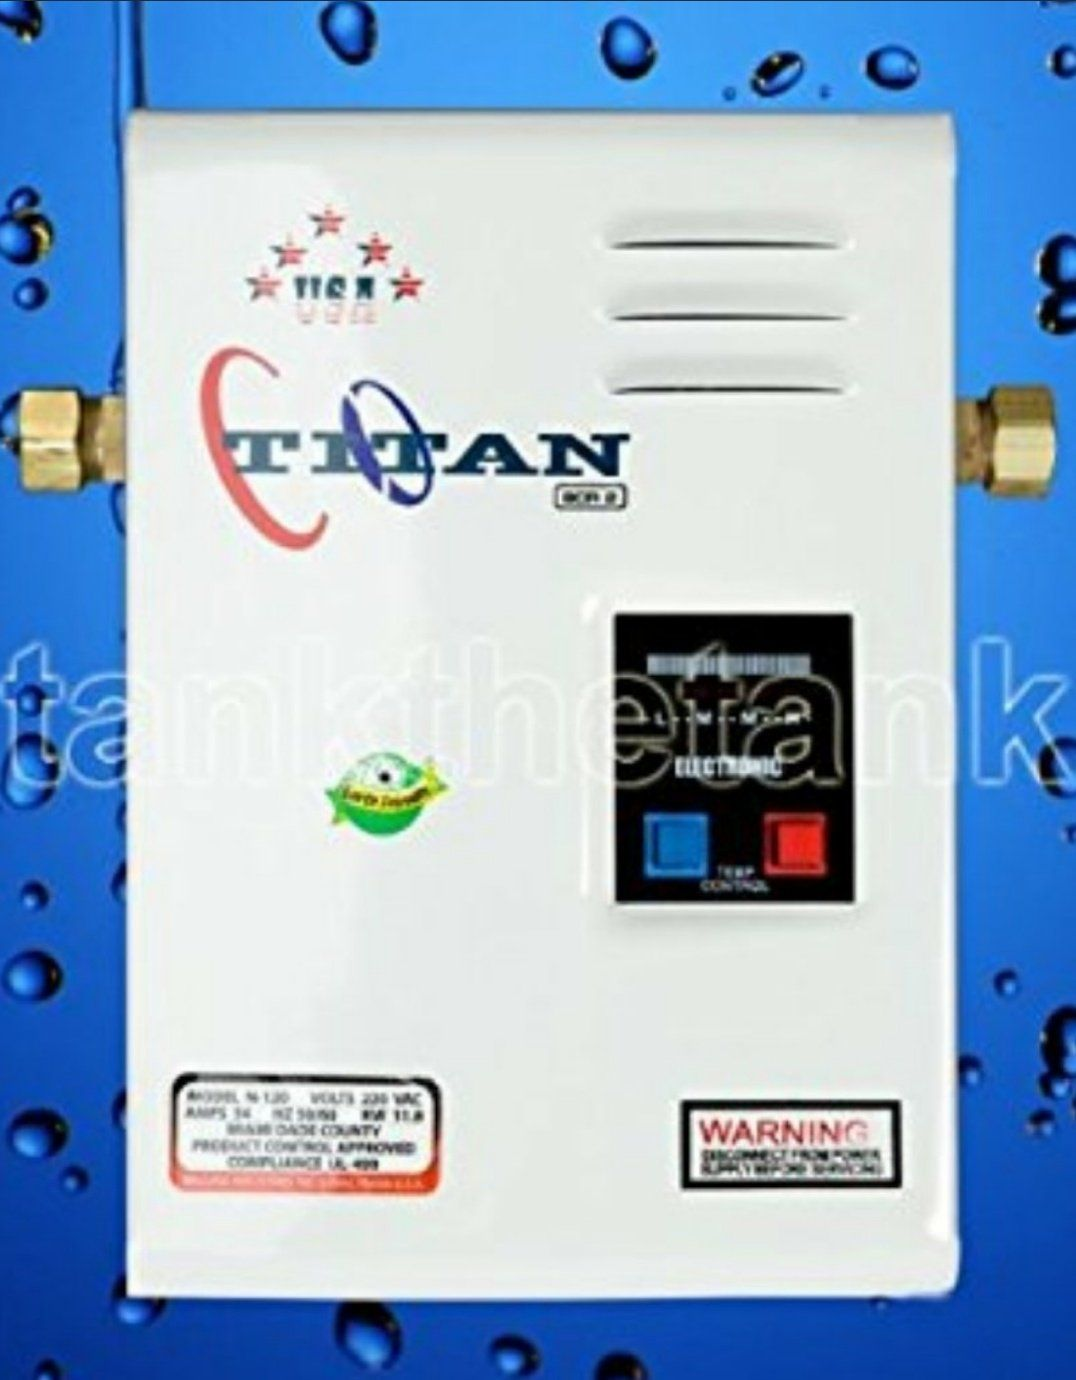 C Titan N 120 Installations Provide In Dade Broward Color Changing Lights Water Heating Save Energy